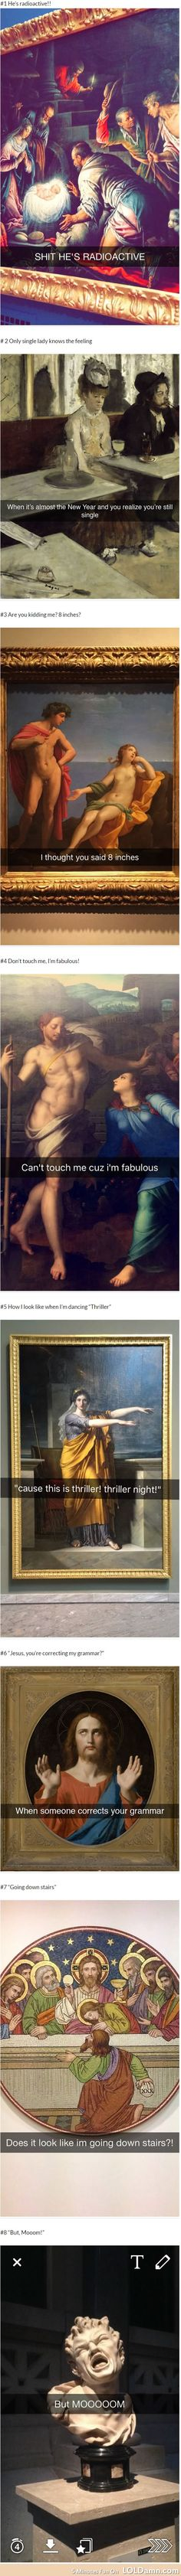 "No more boring when you visiting #museum if you add some snapchats on those awesome #arts (paintings, statues). Below are 8 expensive and awesome arts becoming one part of the meme culture on the Internet, we call that ""Art #snapchats""!"